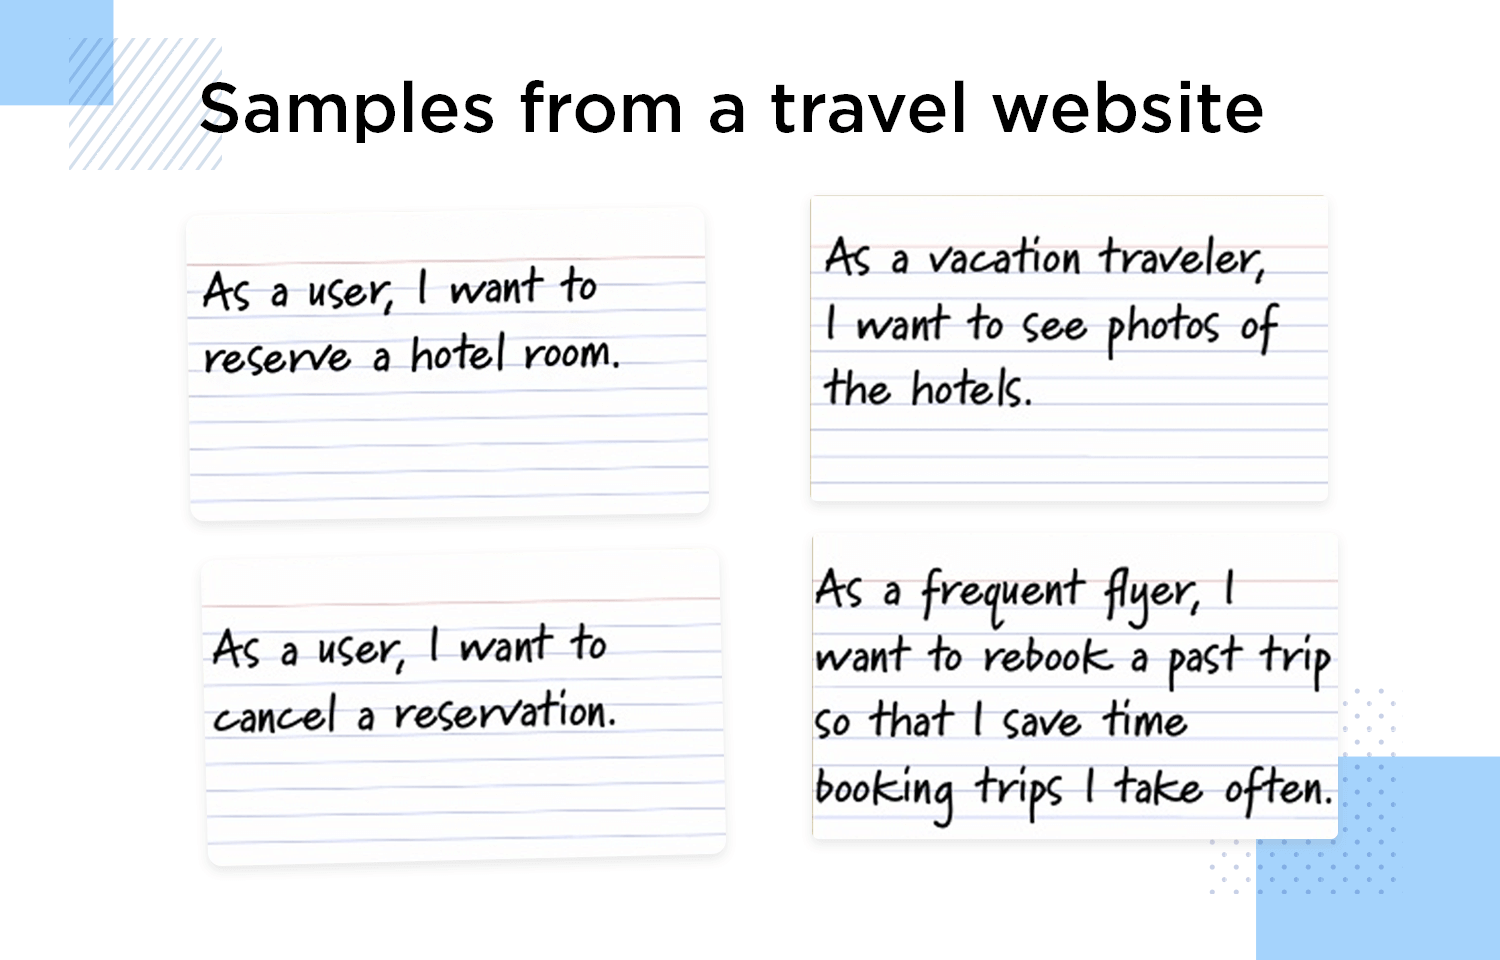 4 travel website user story examples